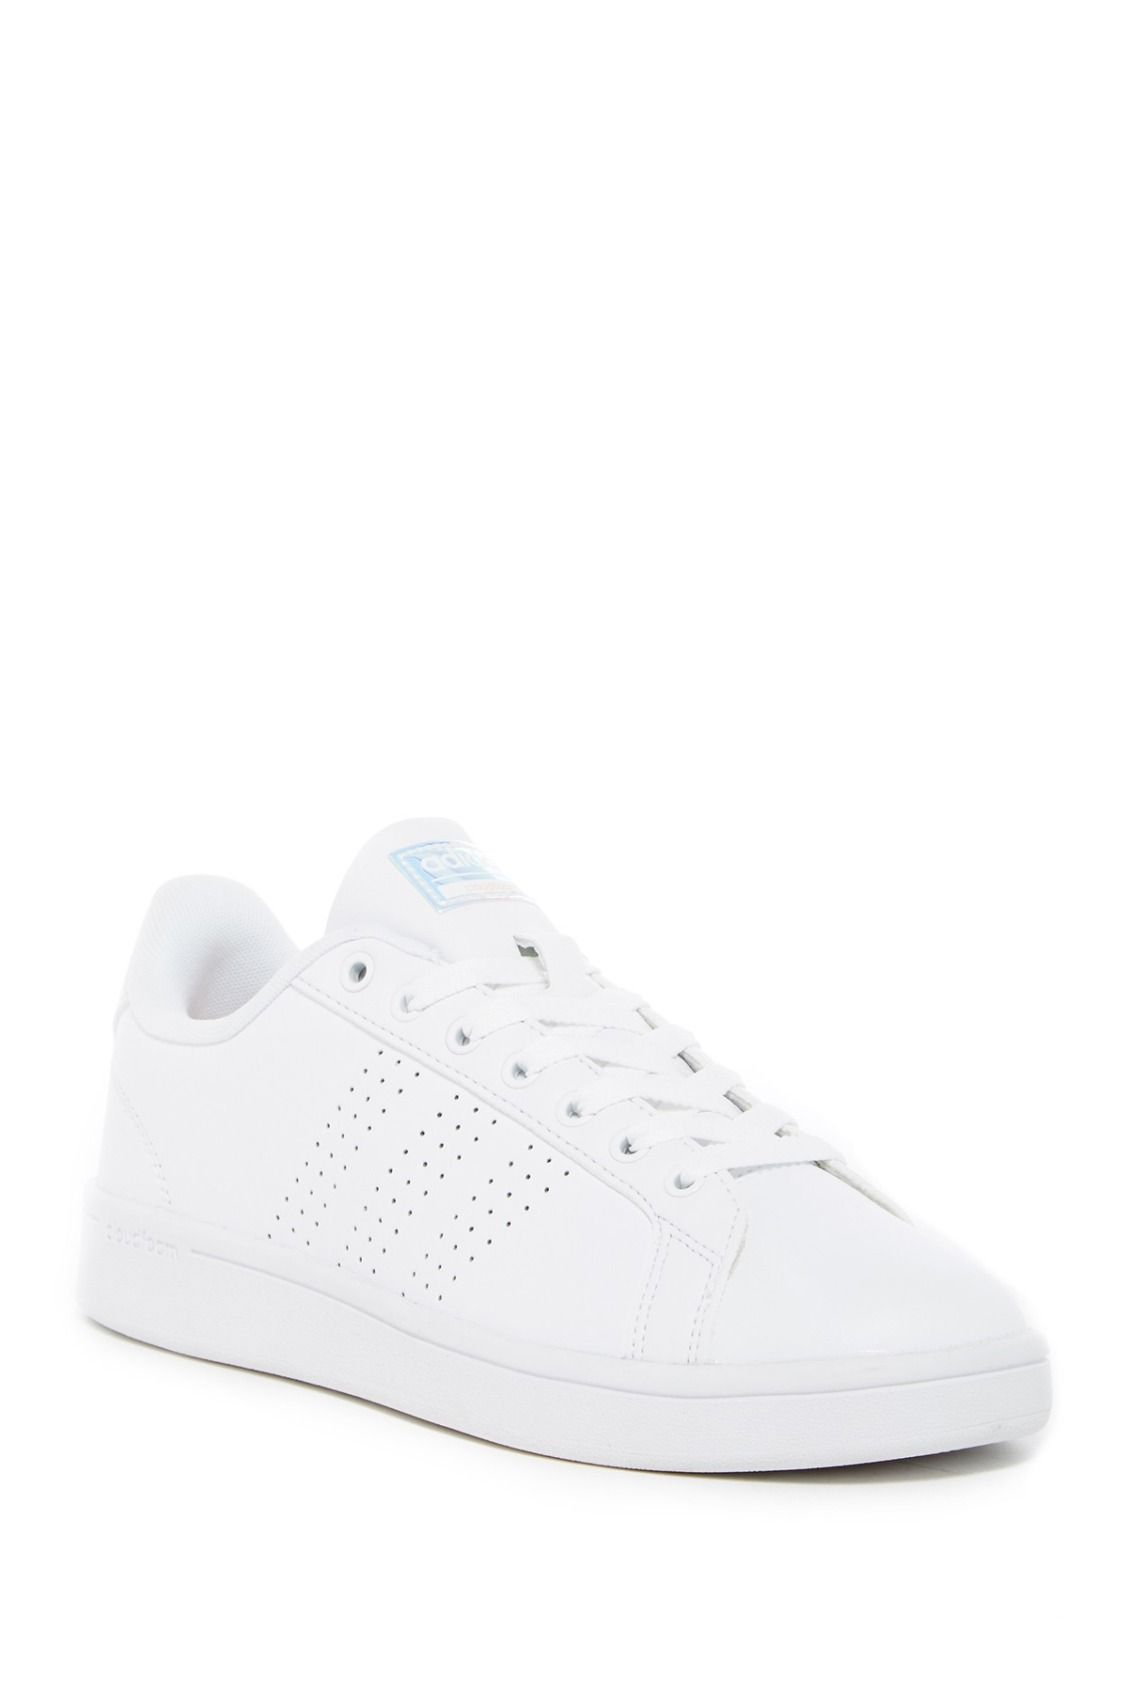 Clean White adidas Cloudfoam Advantage Clean Sneakers ...